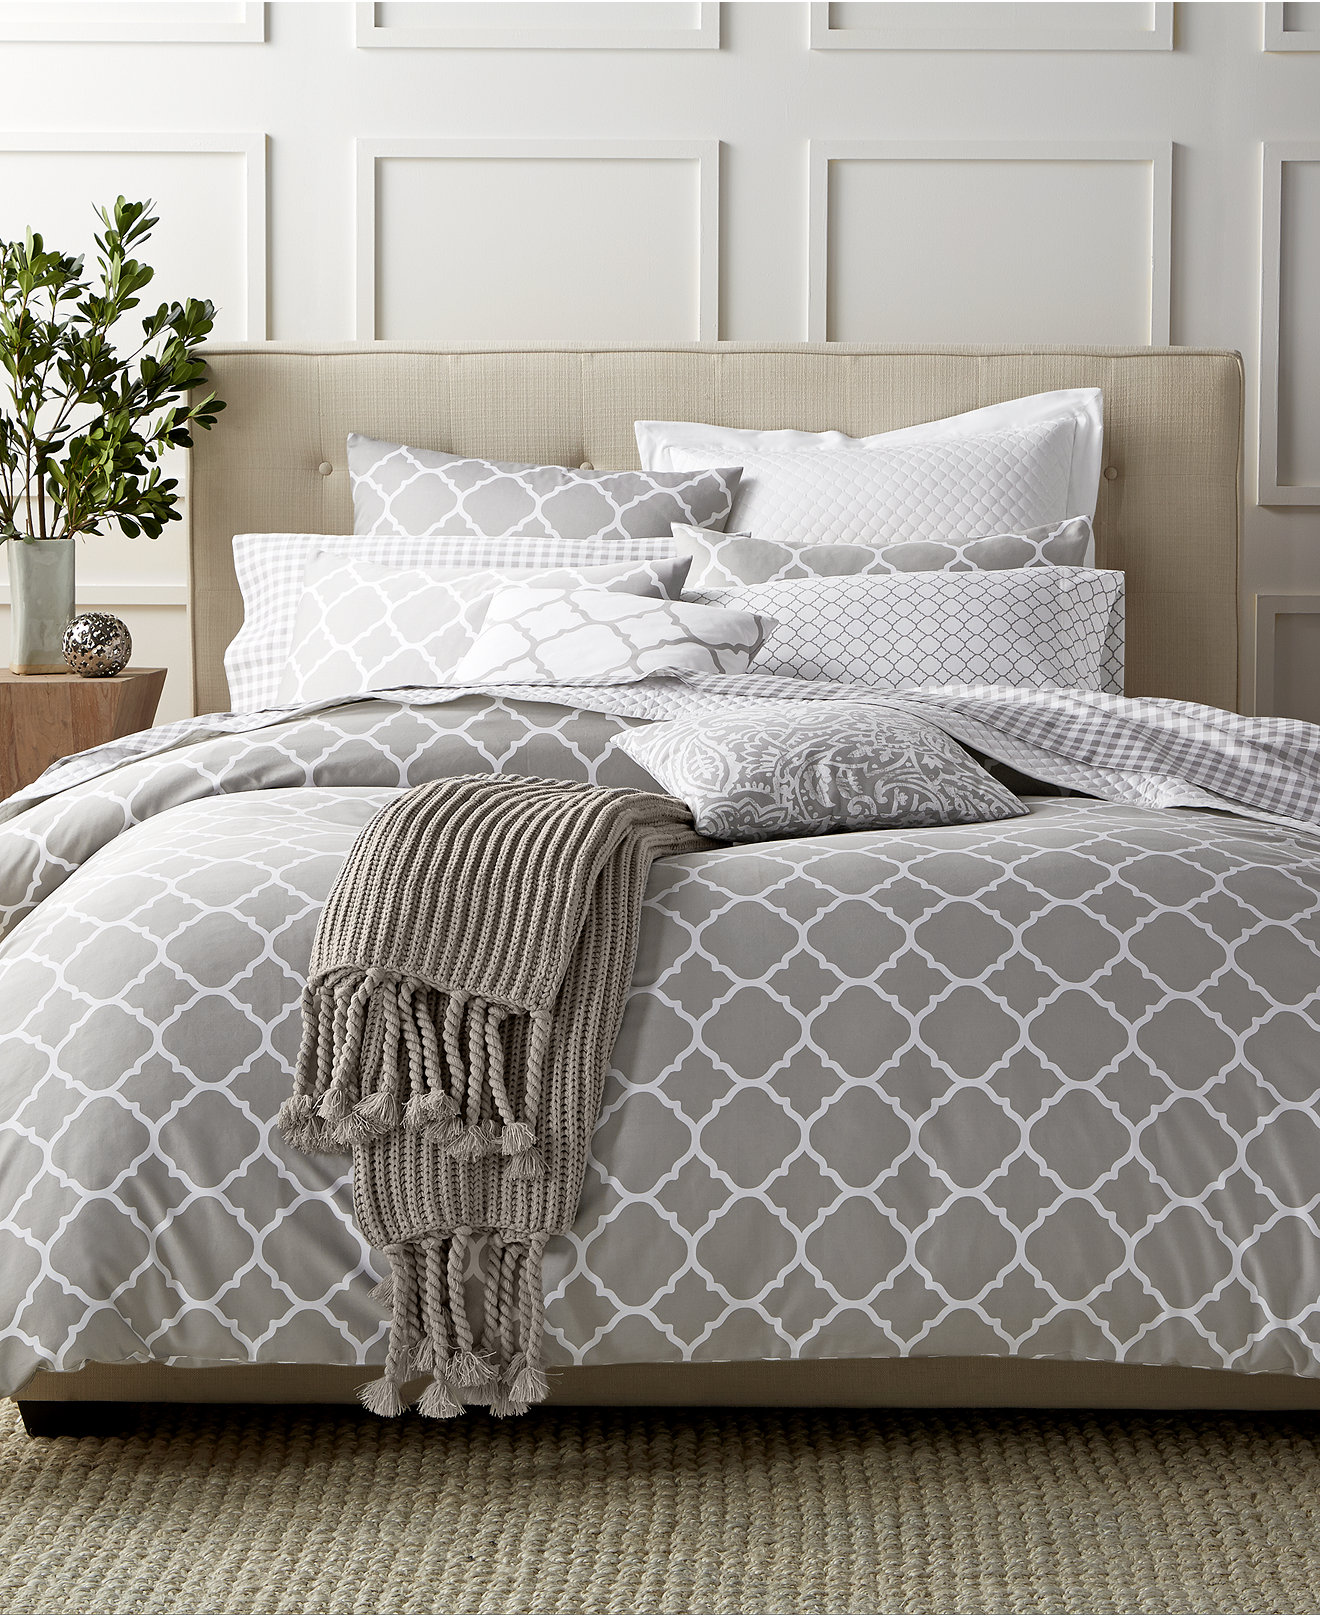 comforters  macy's - charter club damask designs geometric dove comforter sets created formacy's